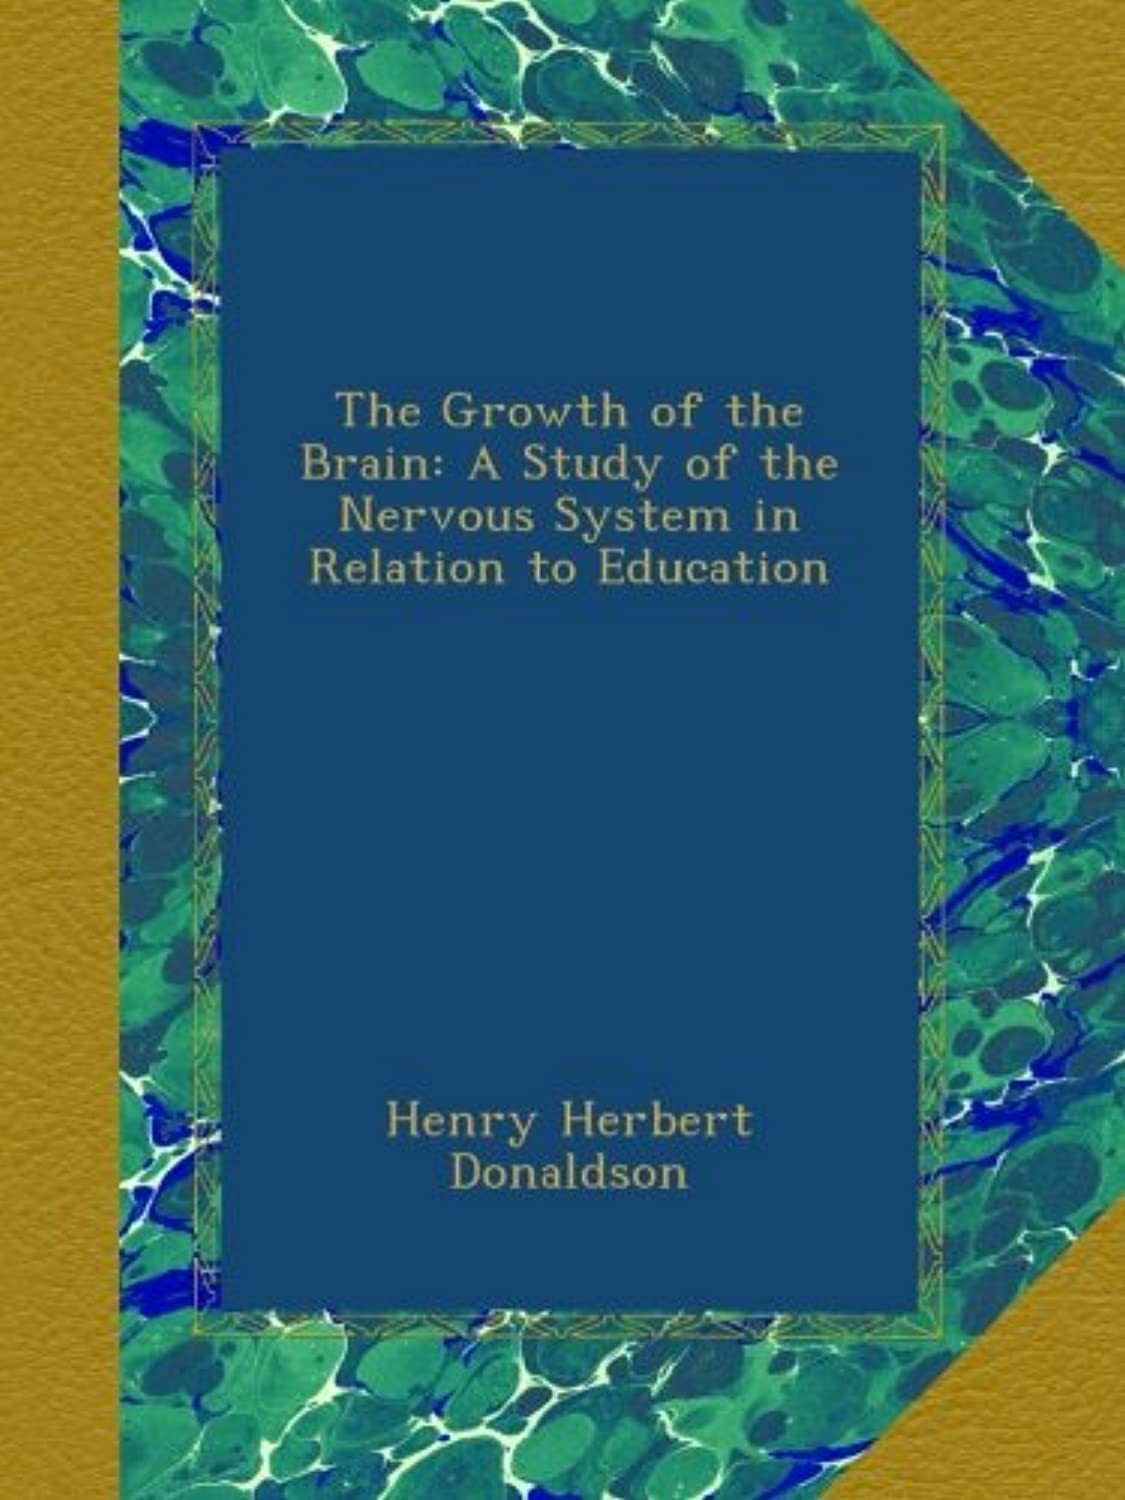 The Growth of the Brain: A Study of the Nervous System in Relation to Education